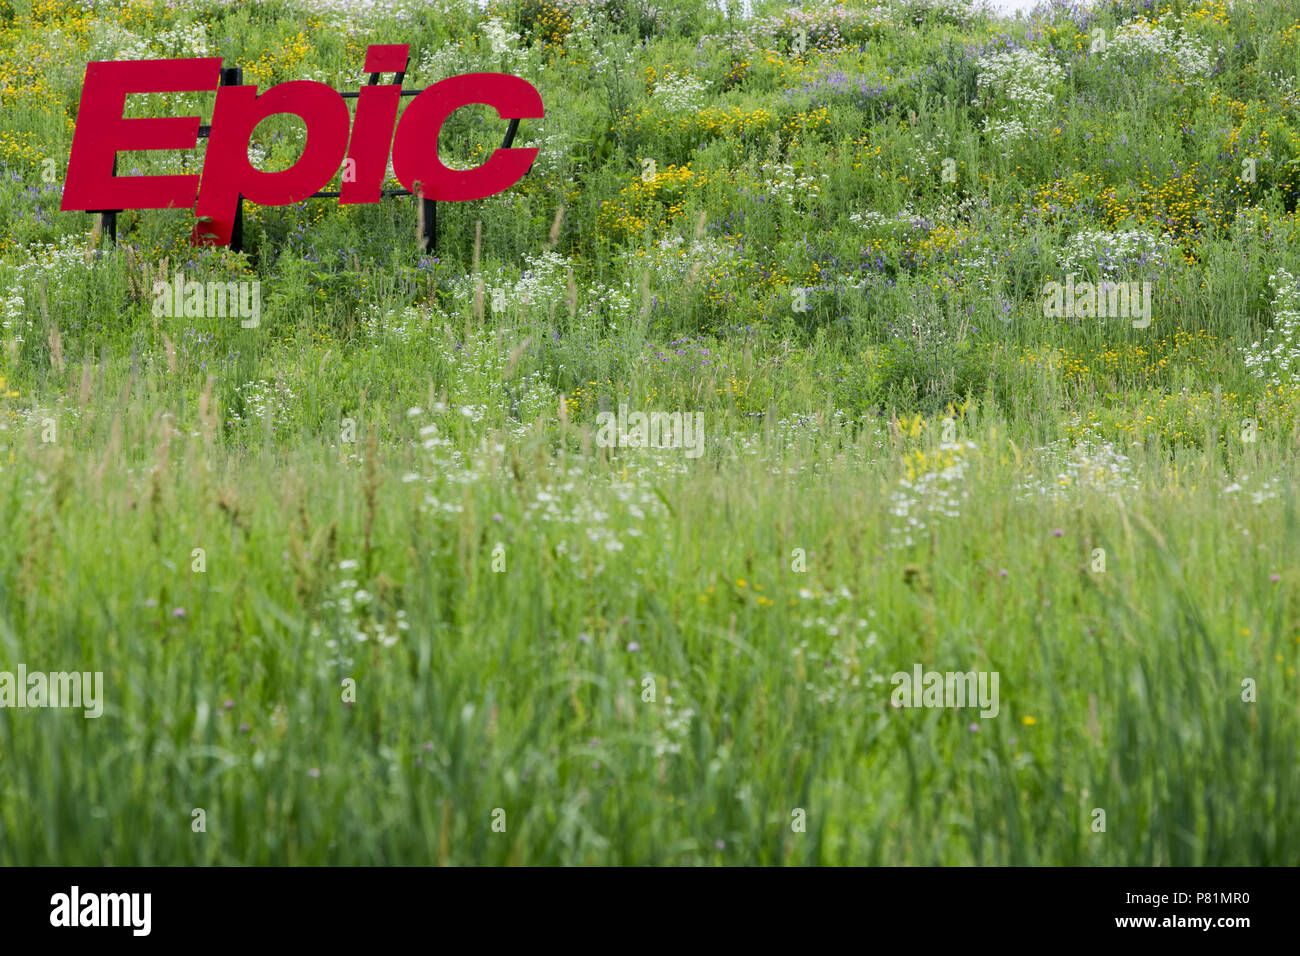 A logo sign outside of the headquarters of the Epic Systems Corporation in Verona, Wisconsin, on June 23, 2018. - Stock Image